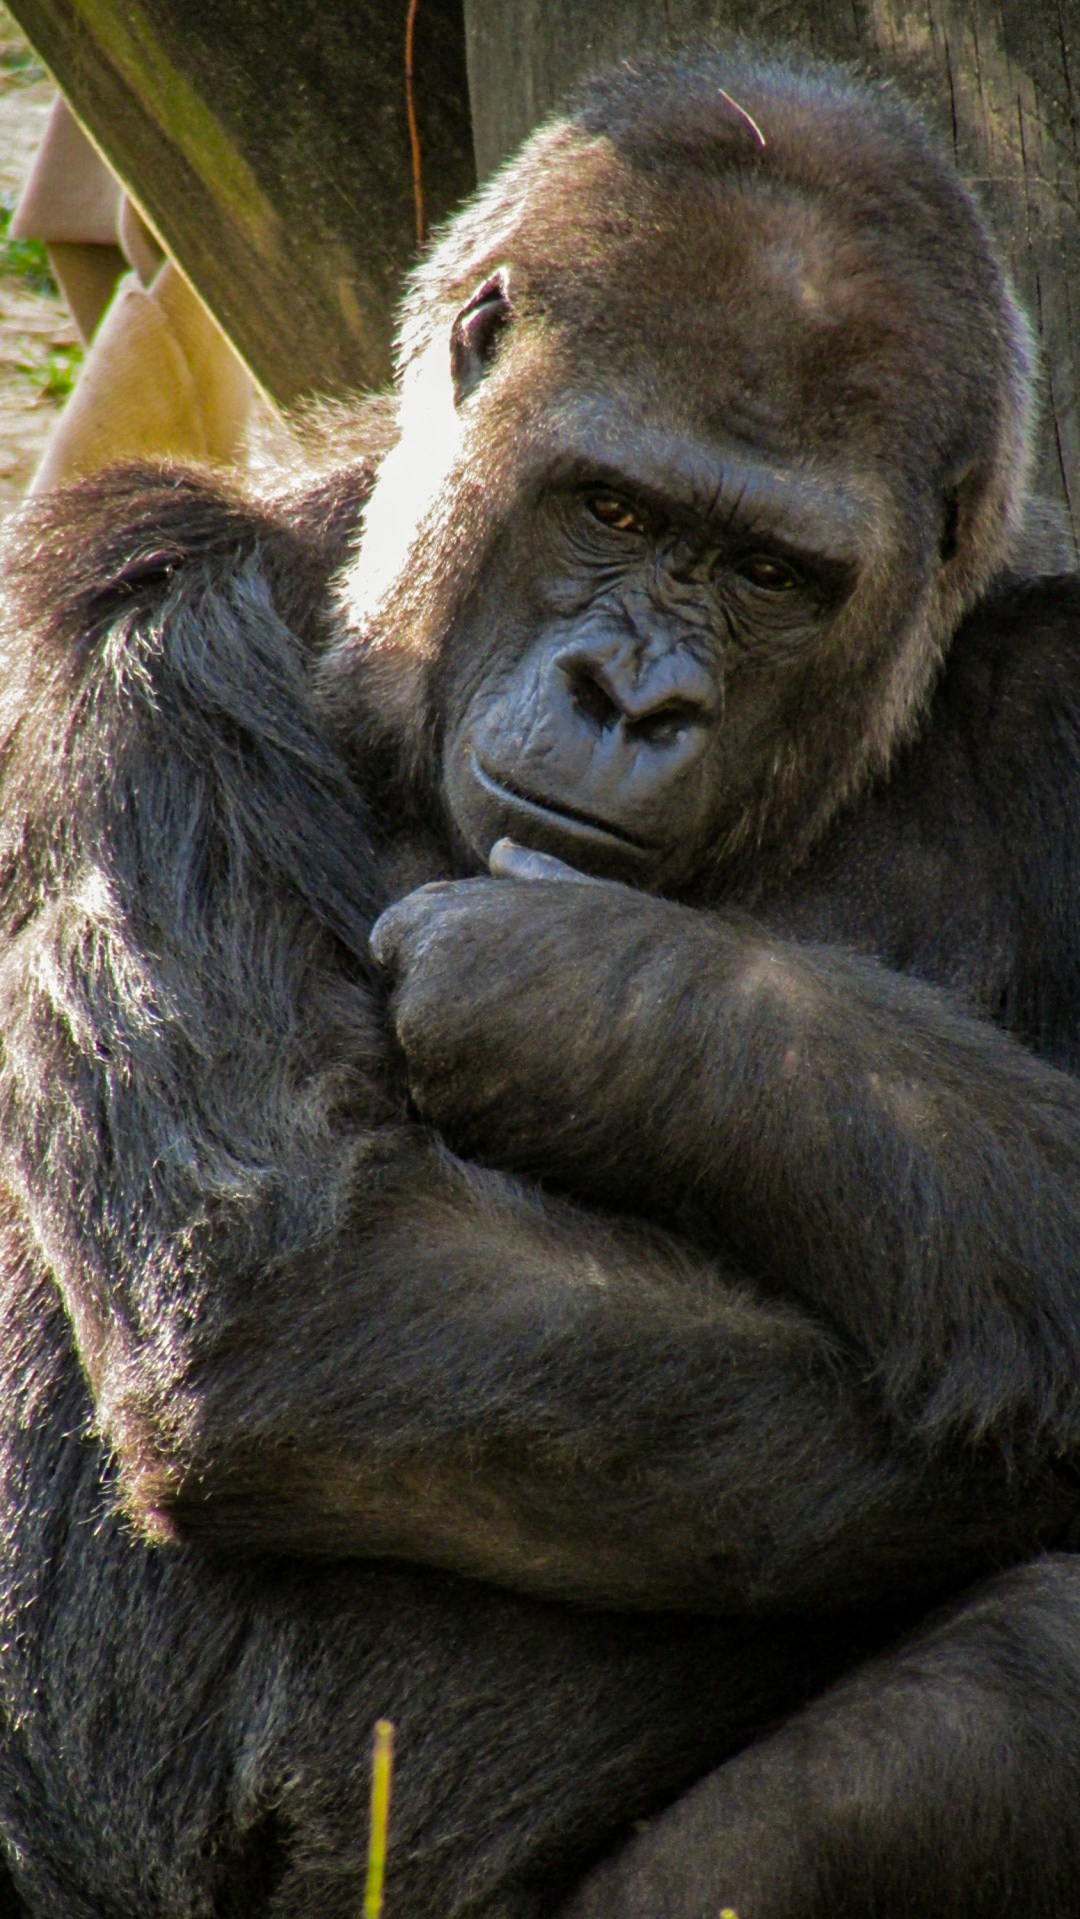 Black Gorilla Beside Wood Photo Free Animal Image On